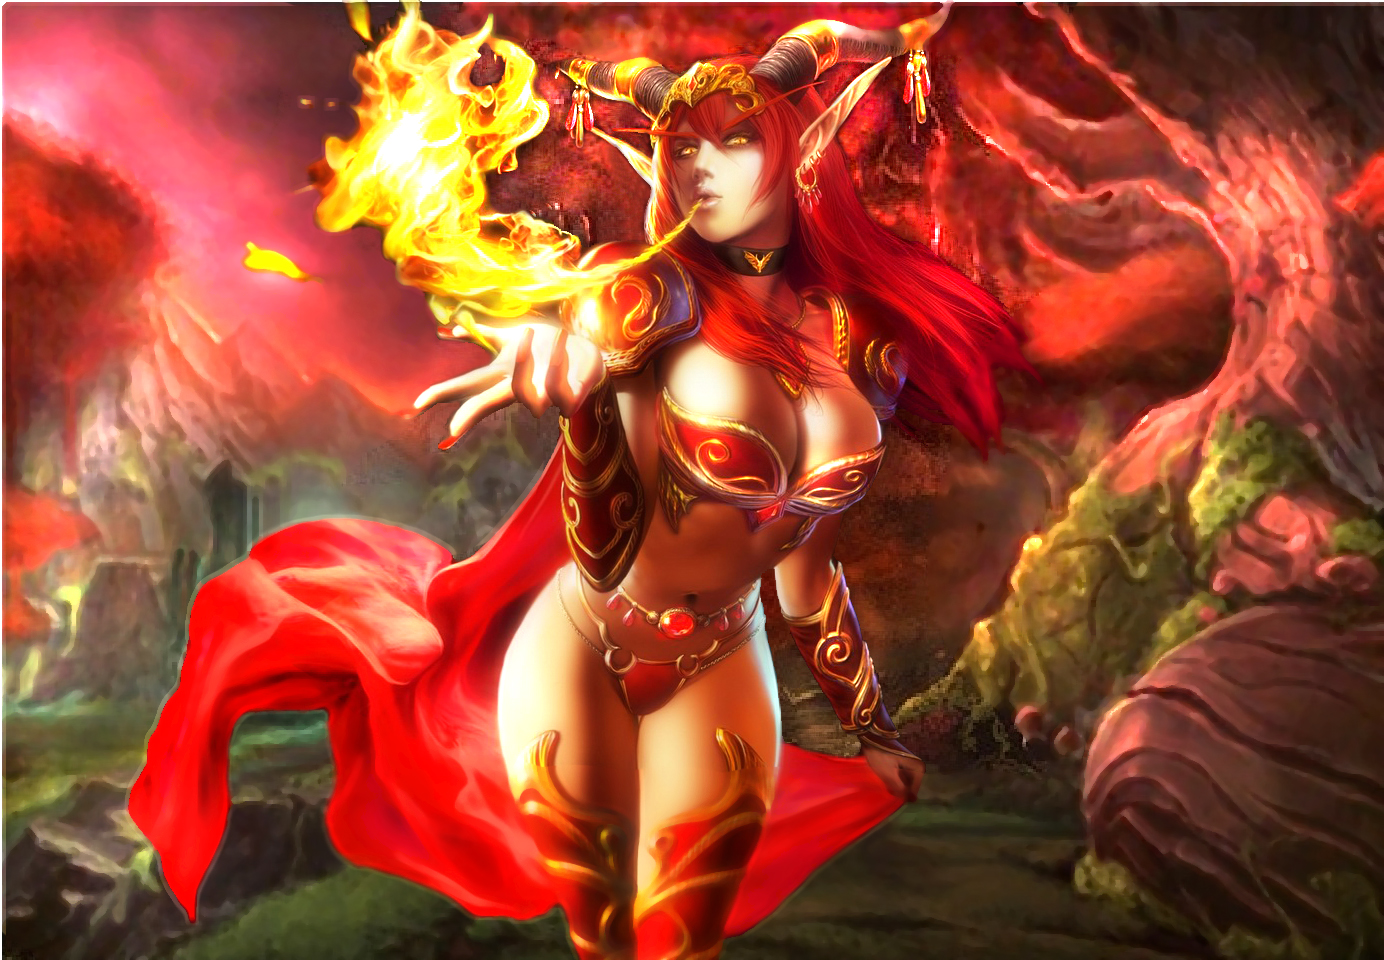 Alexstrasza ero porn galleries